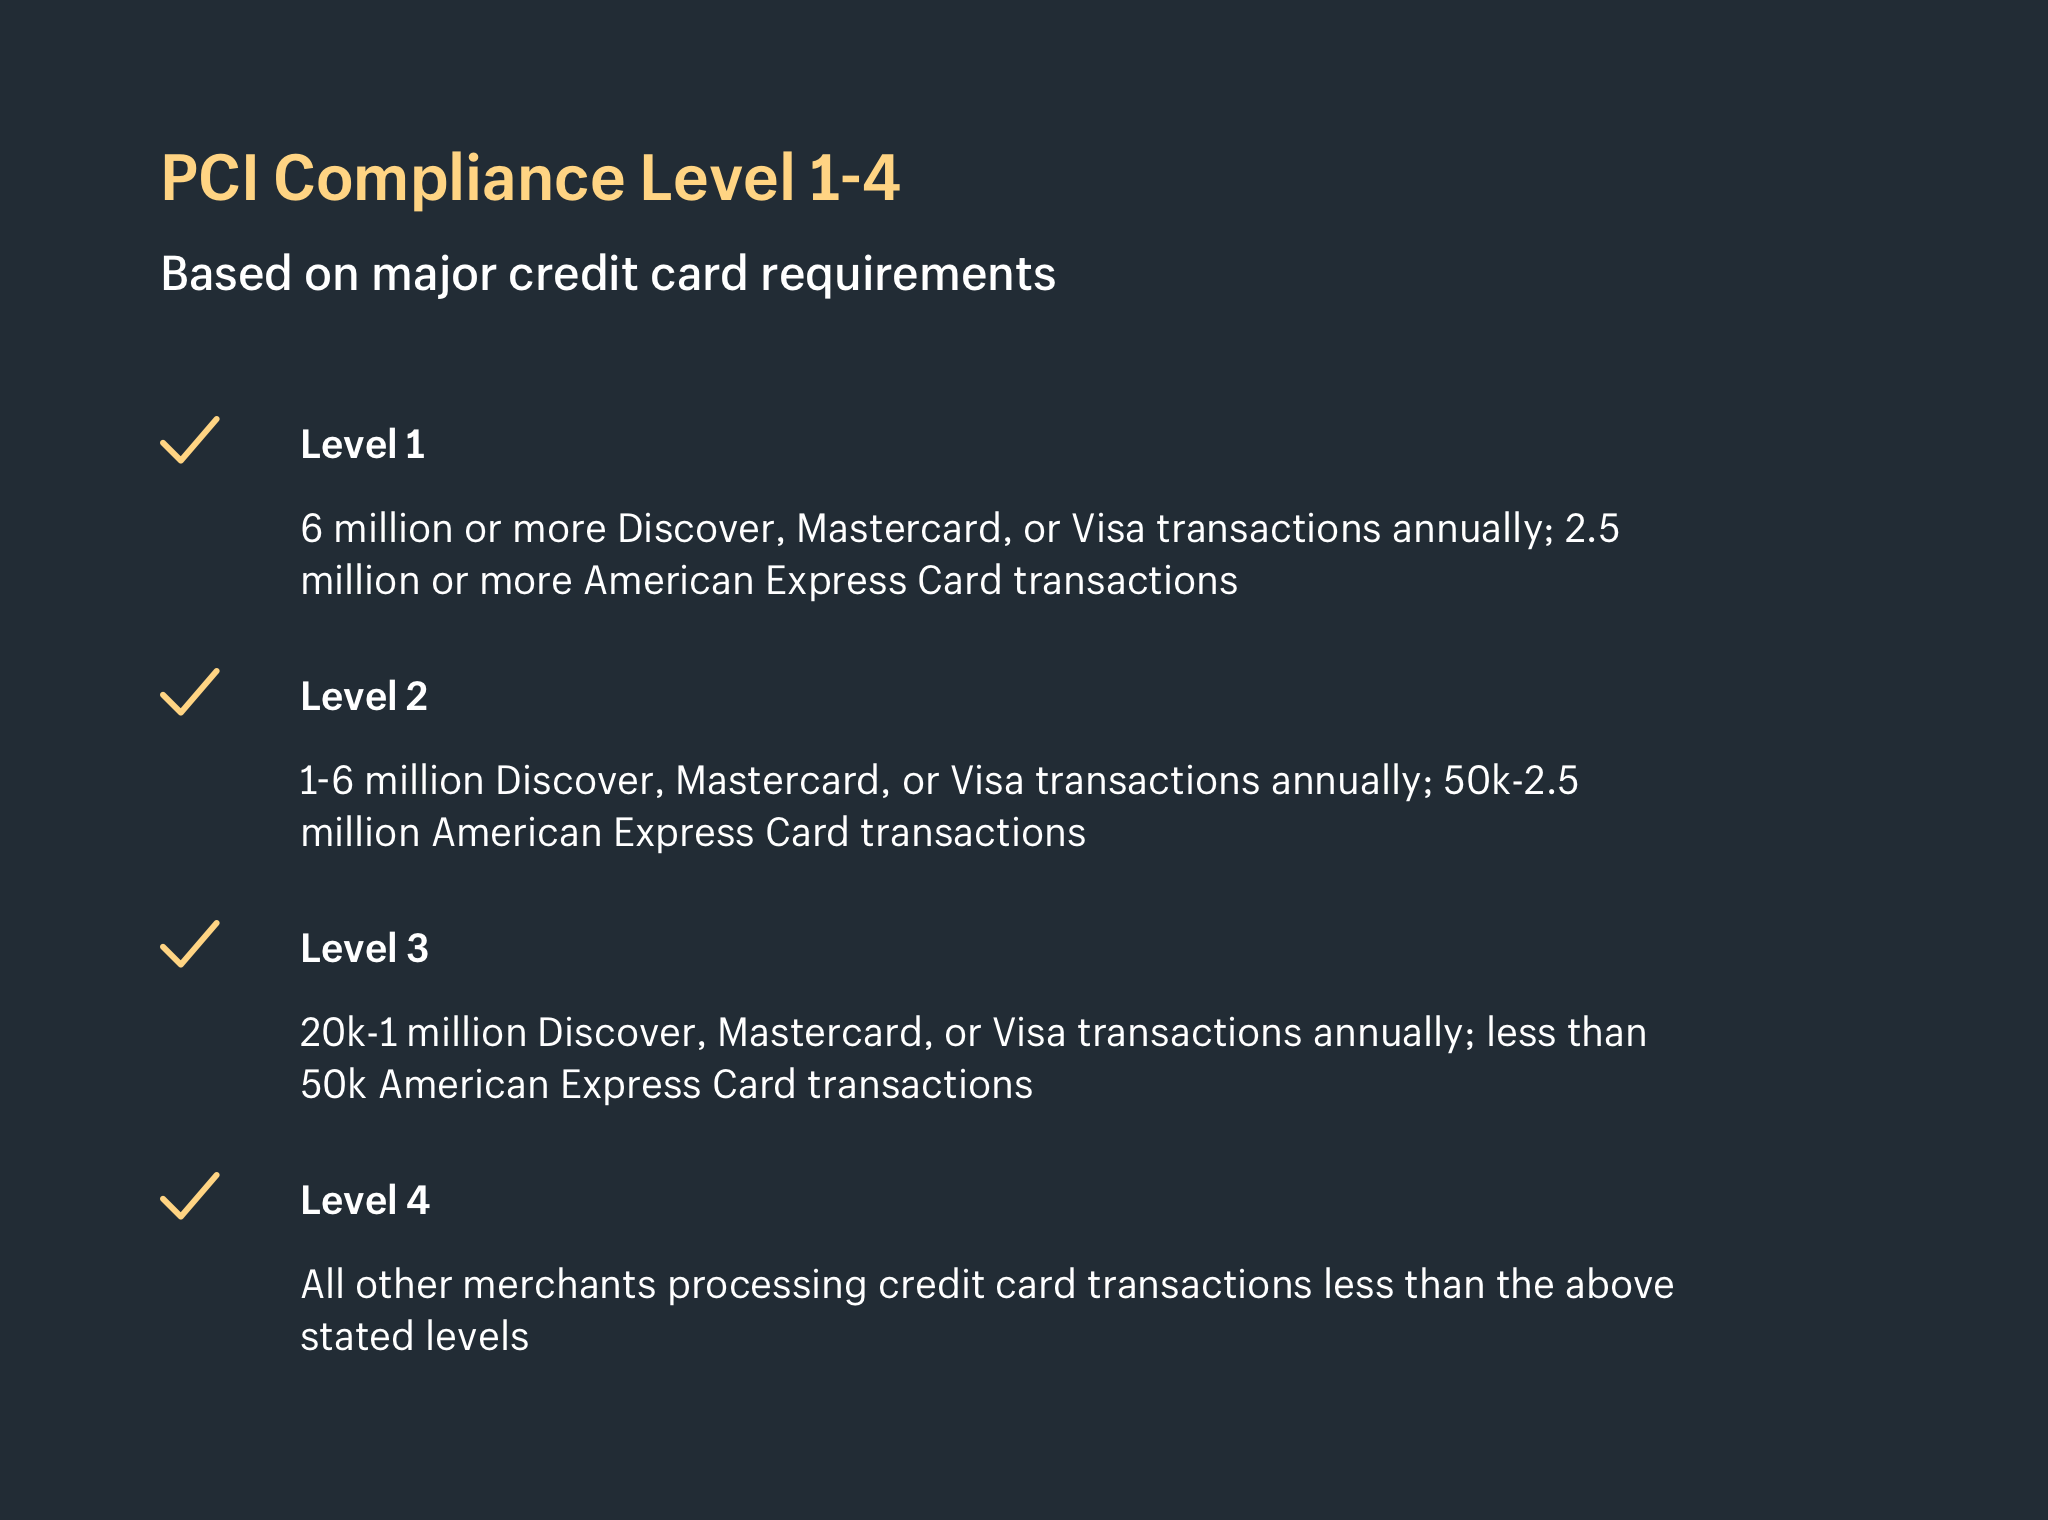 PCI Compliance Level 1-4